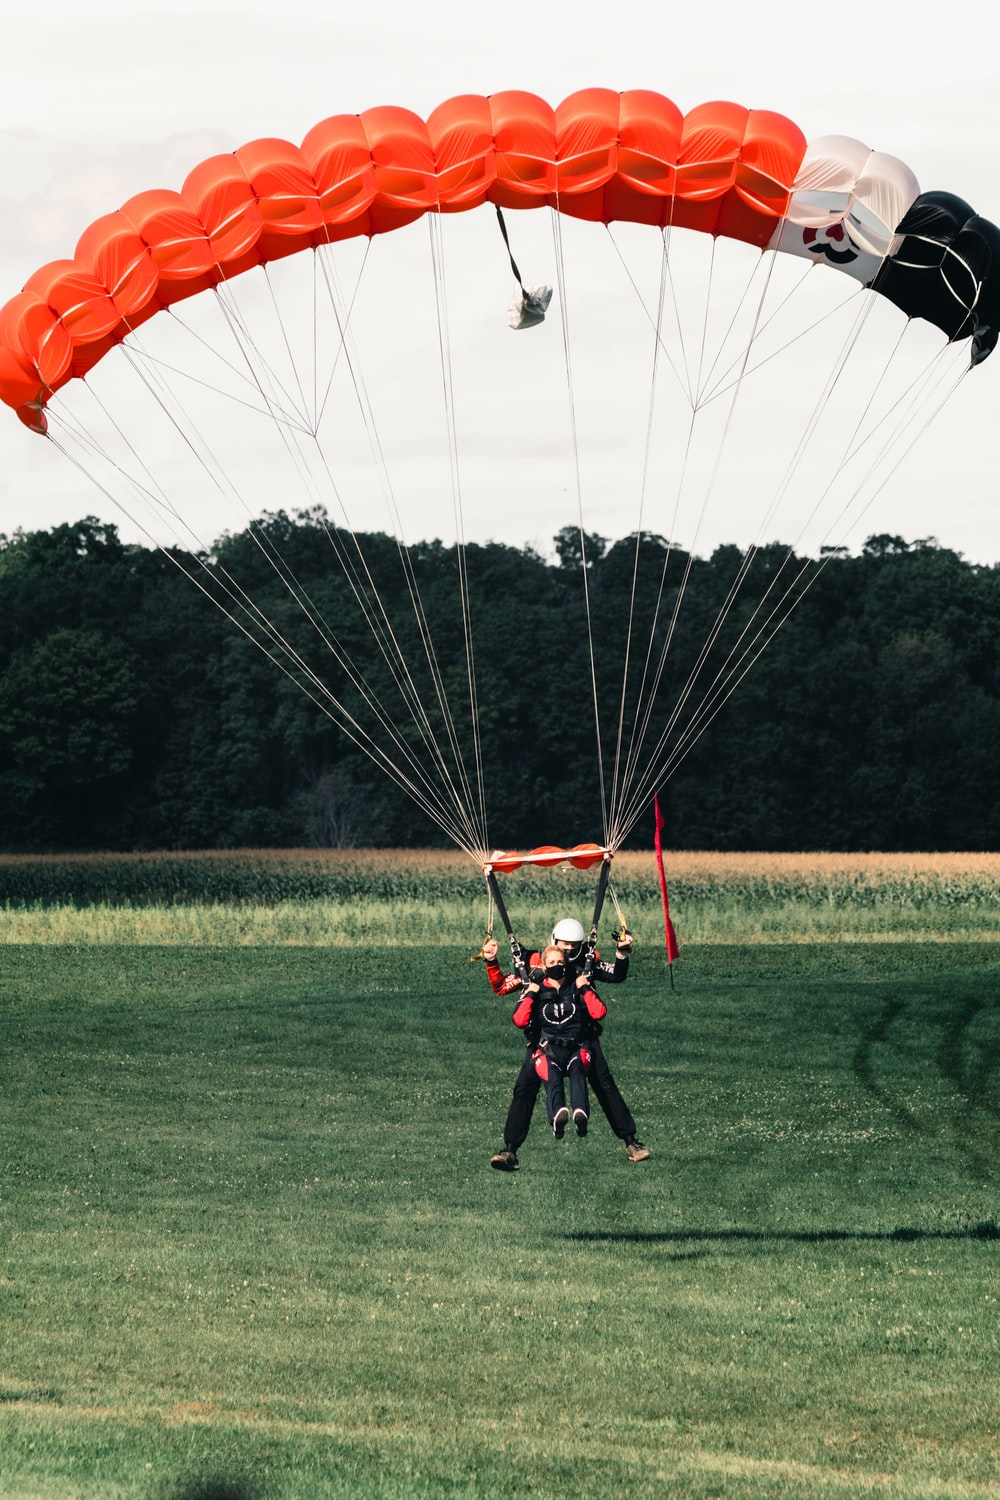 2 men in red and black suit riding on yellow and red parachute